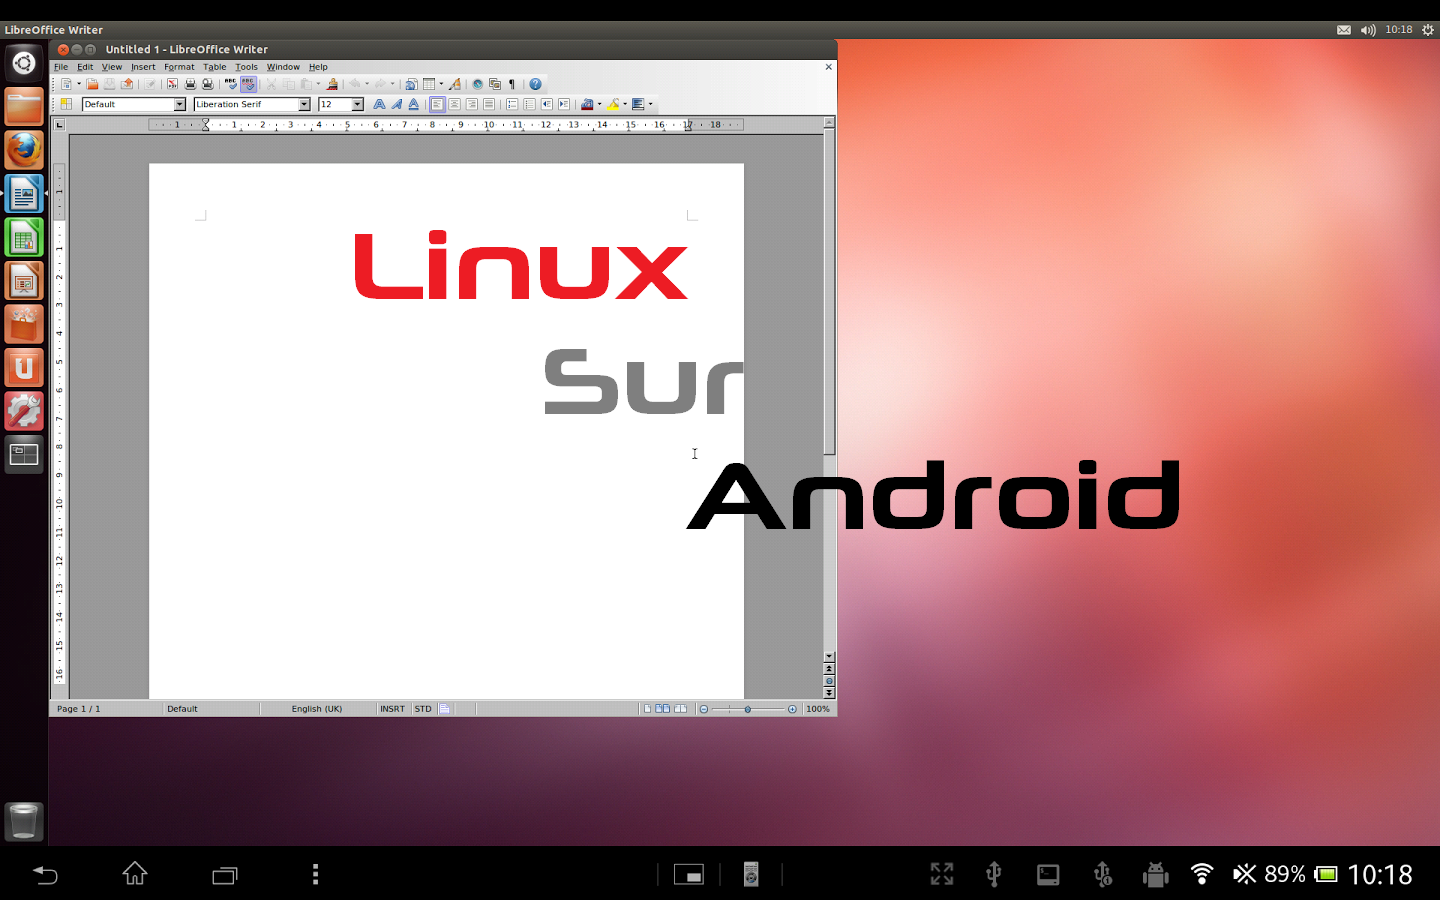 Installer une distribution linux sous android